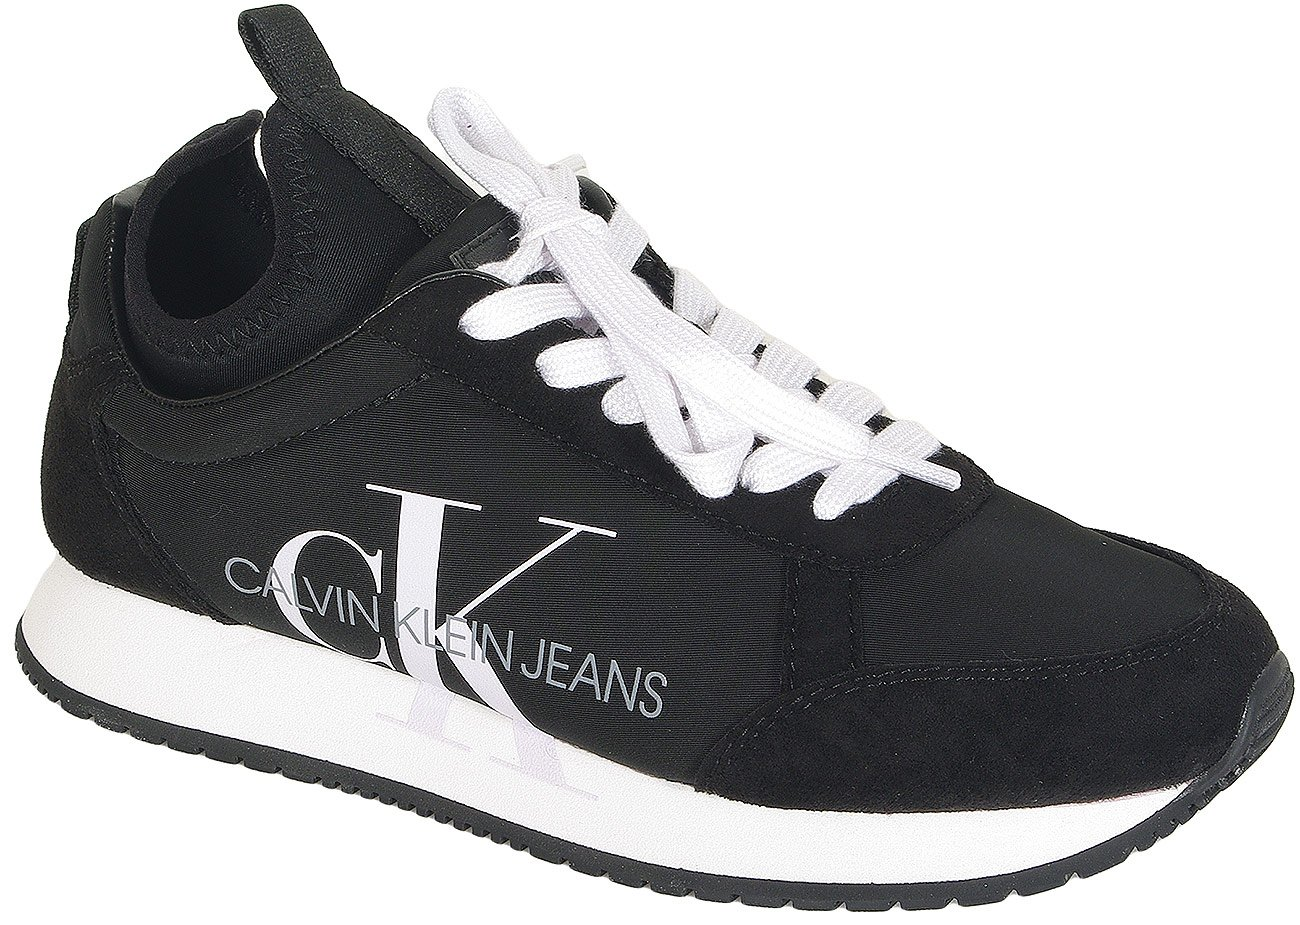 Calvin Klein Jeans Josslyn sneakers low yop lace up - su